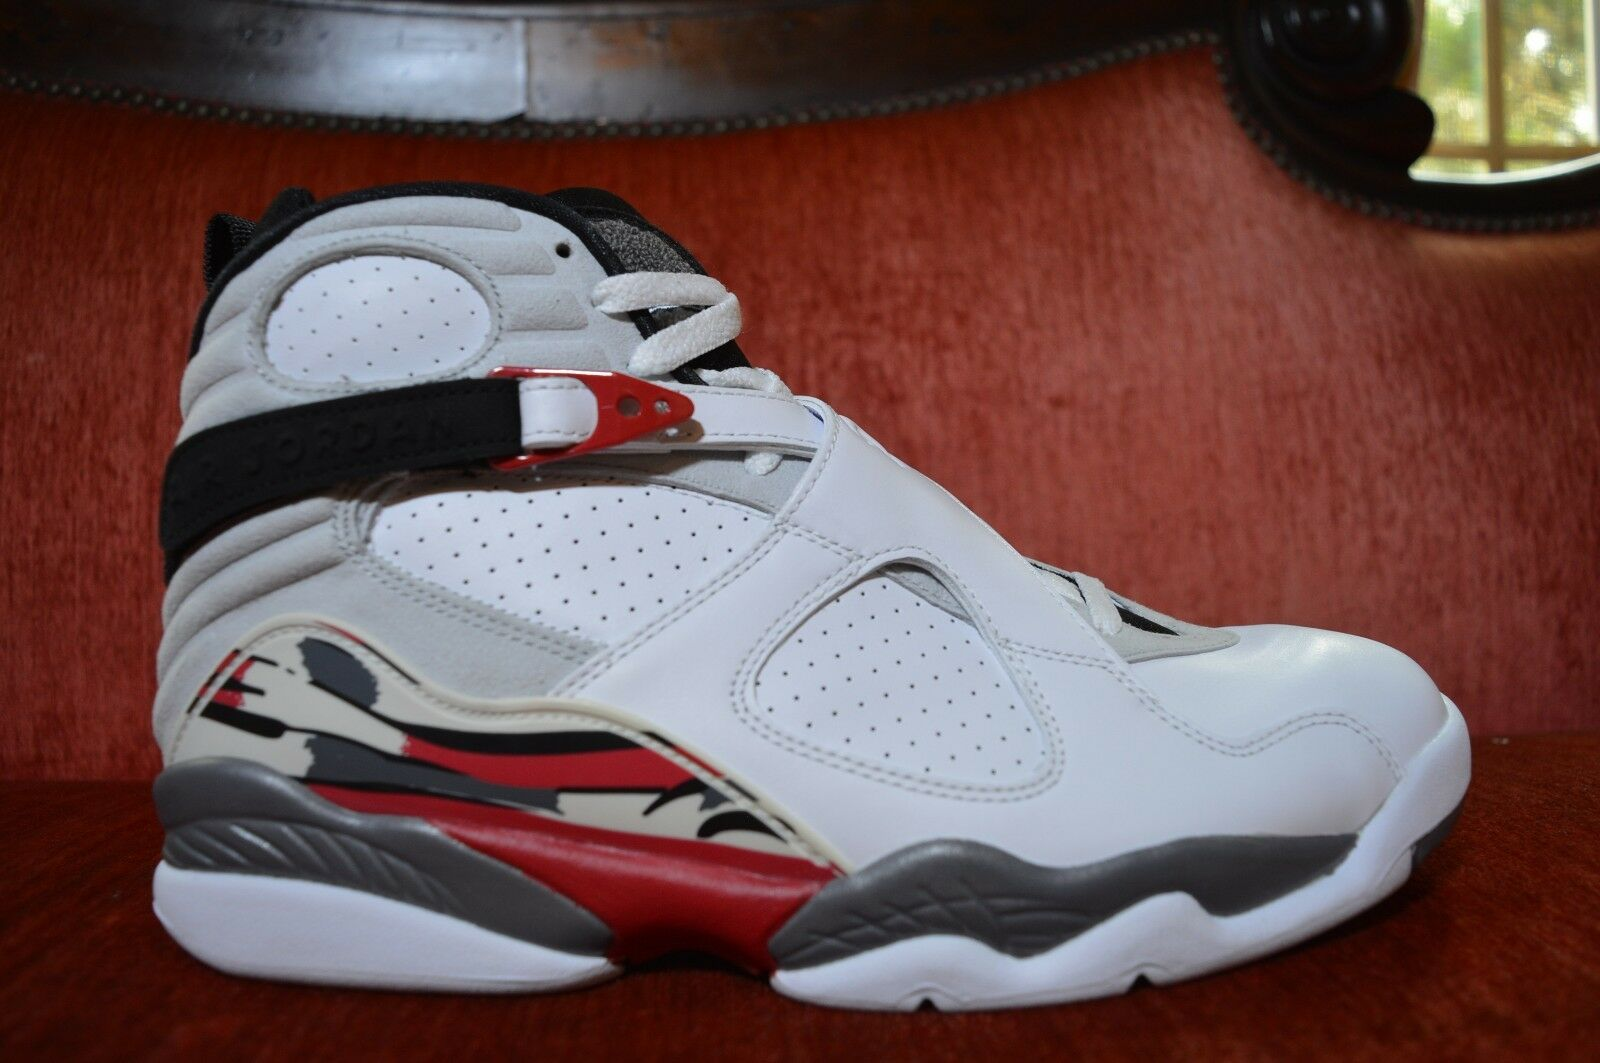 305381 103 Nike Air Jordan Collezione 8 VIII Countdown Pack Bugs Bunny Size 10.5